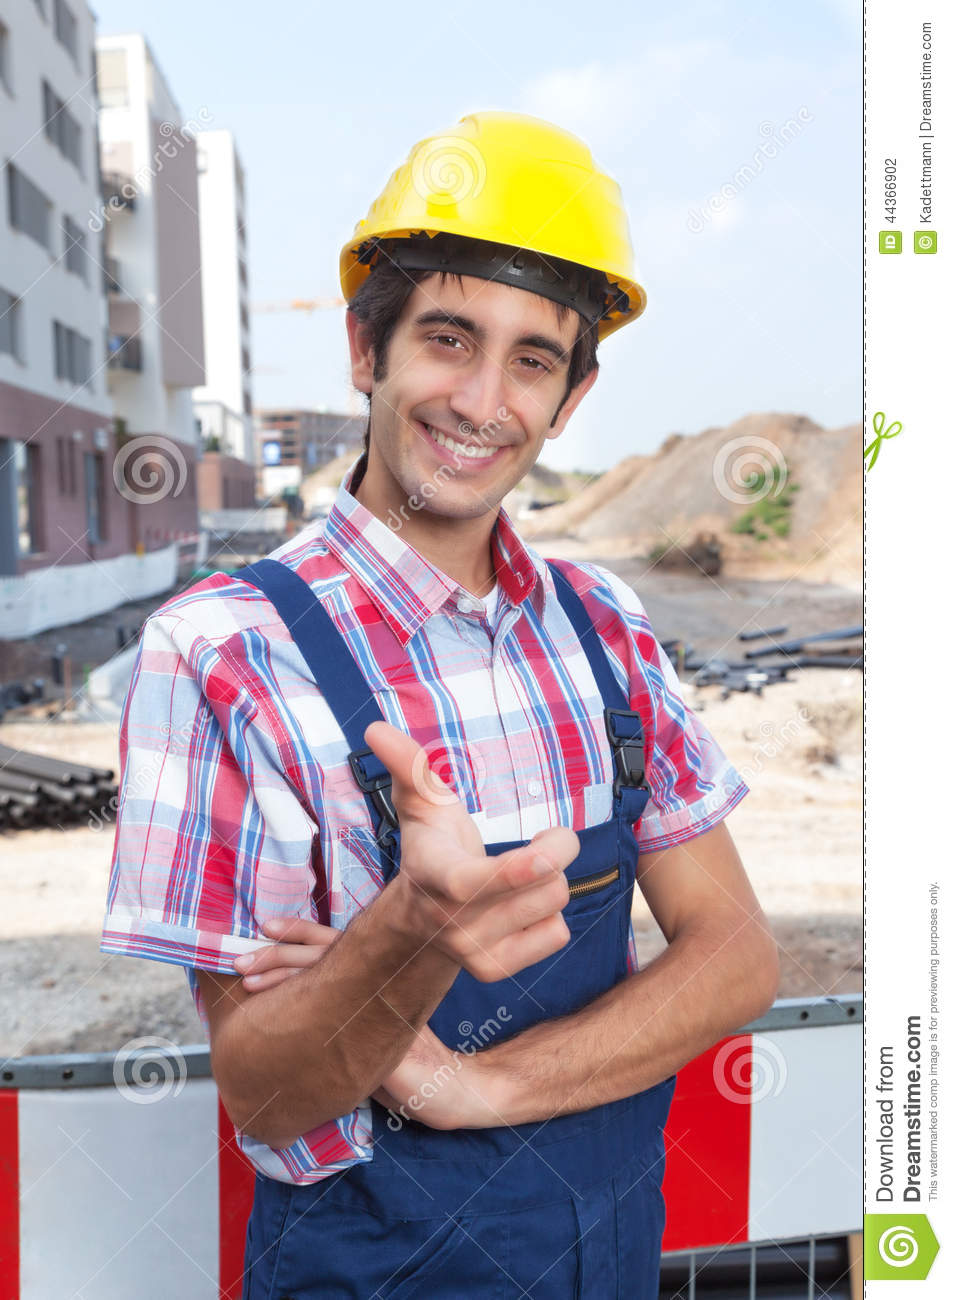 Happy Construction Worker With Black Hair